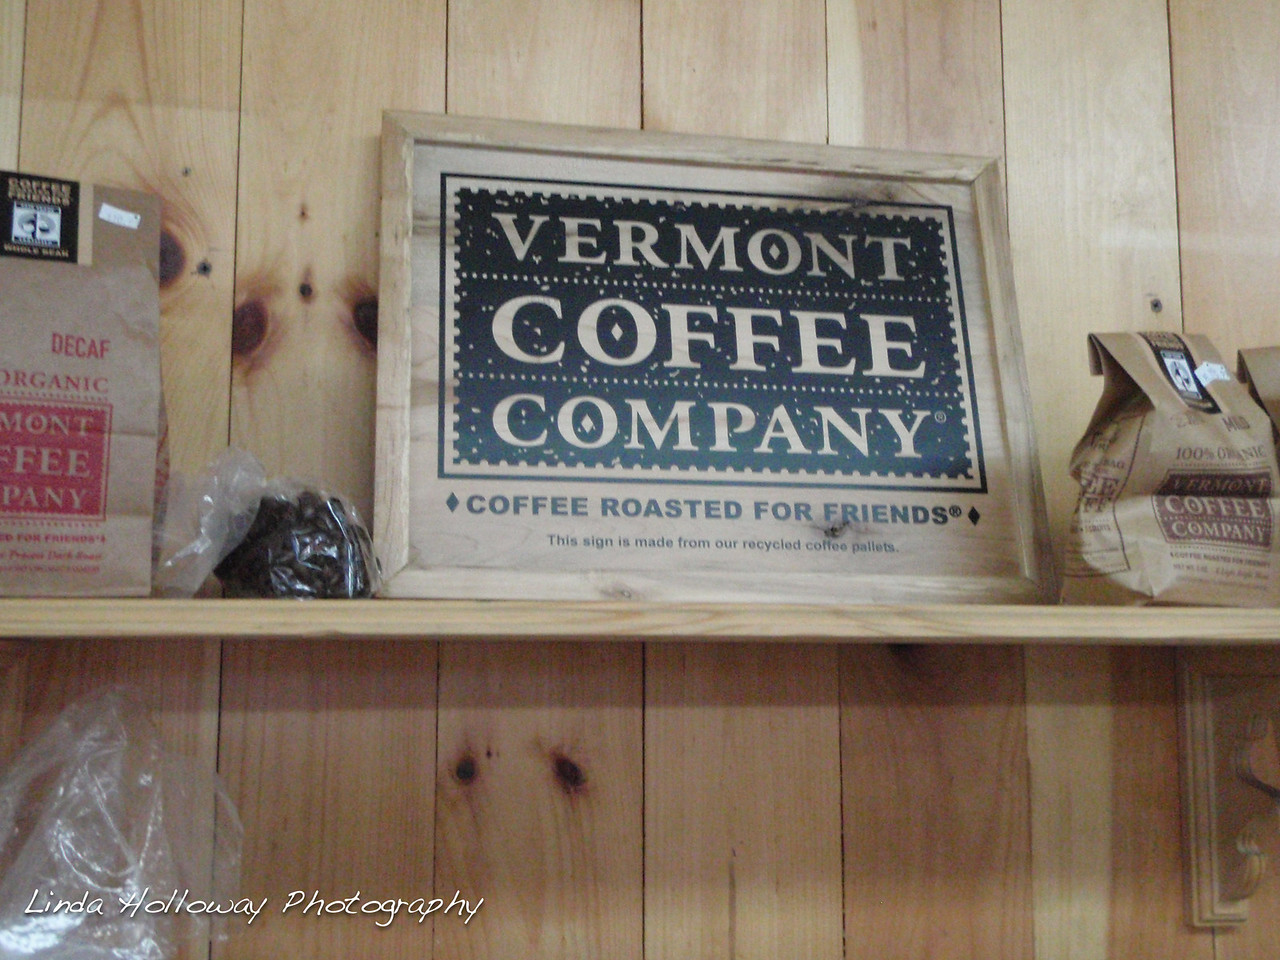 I was drinking Vermont Coffee.